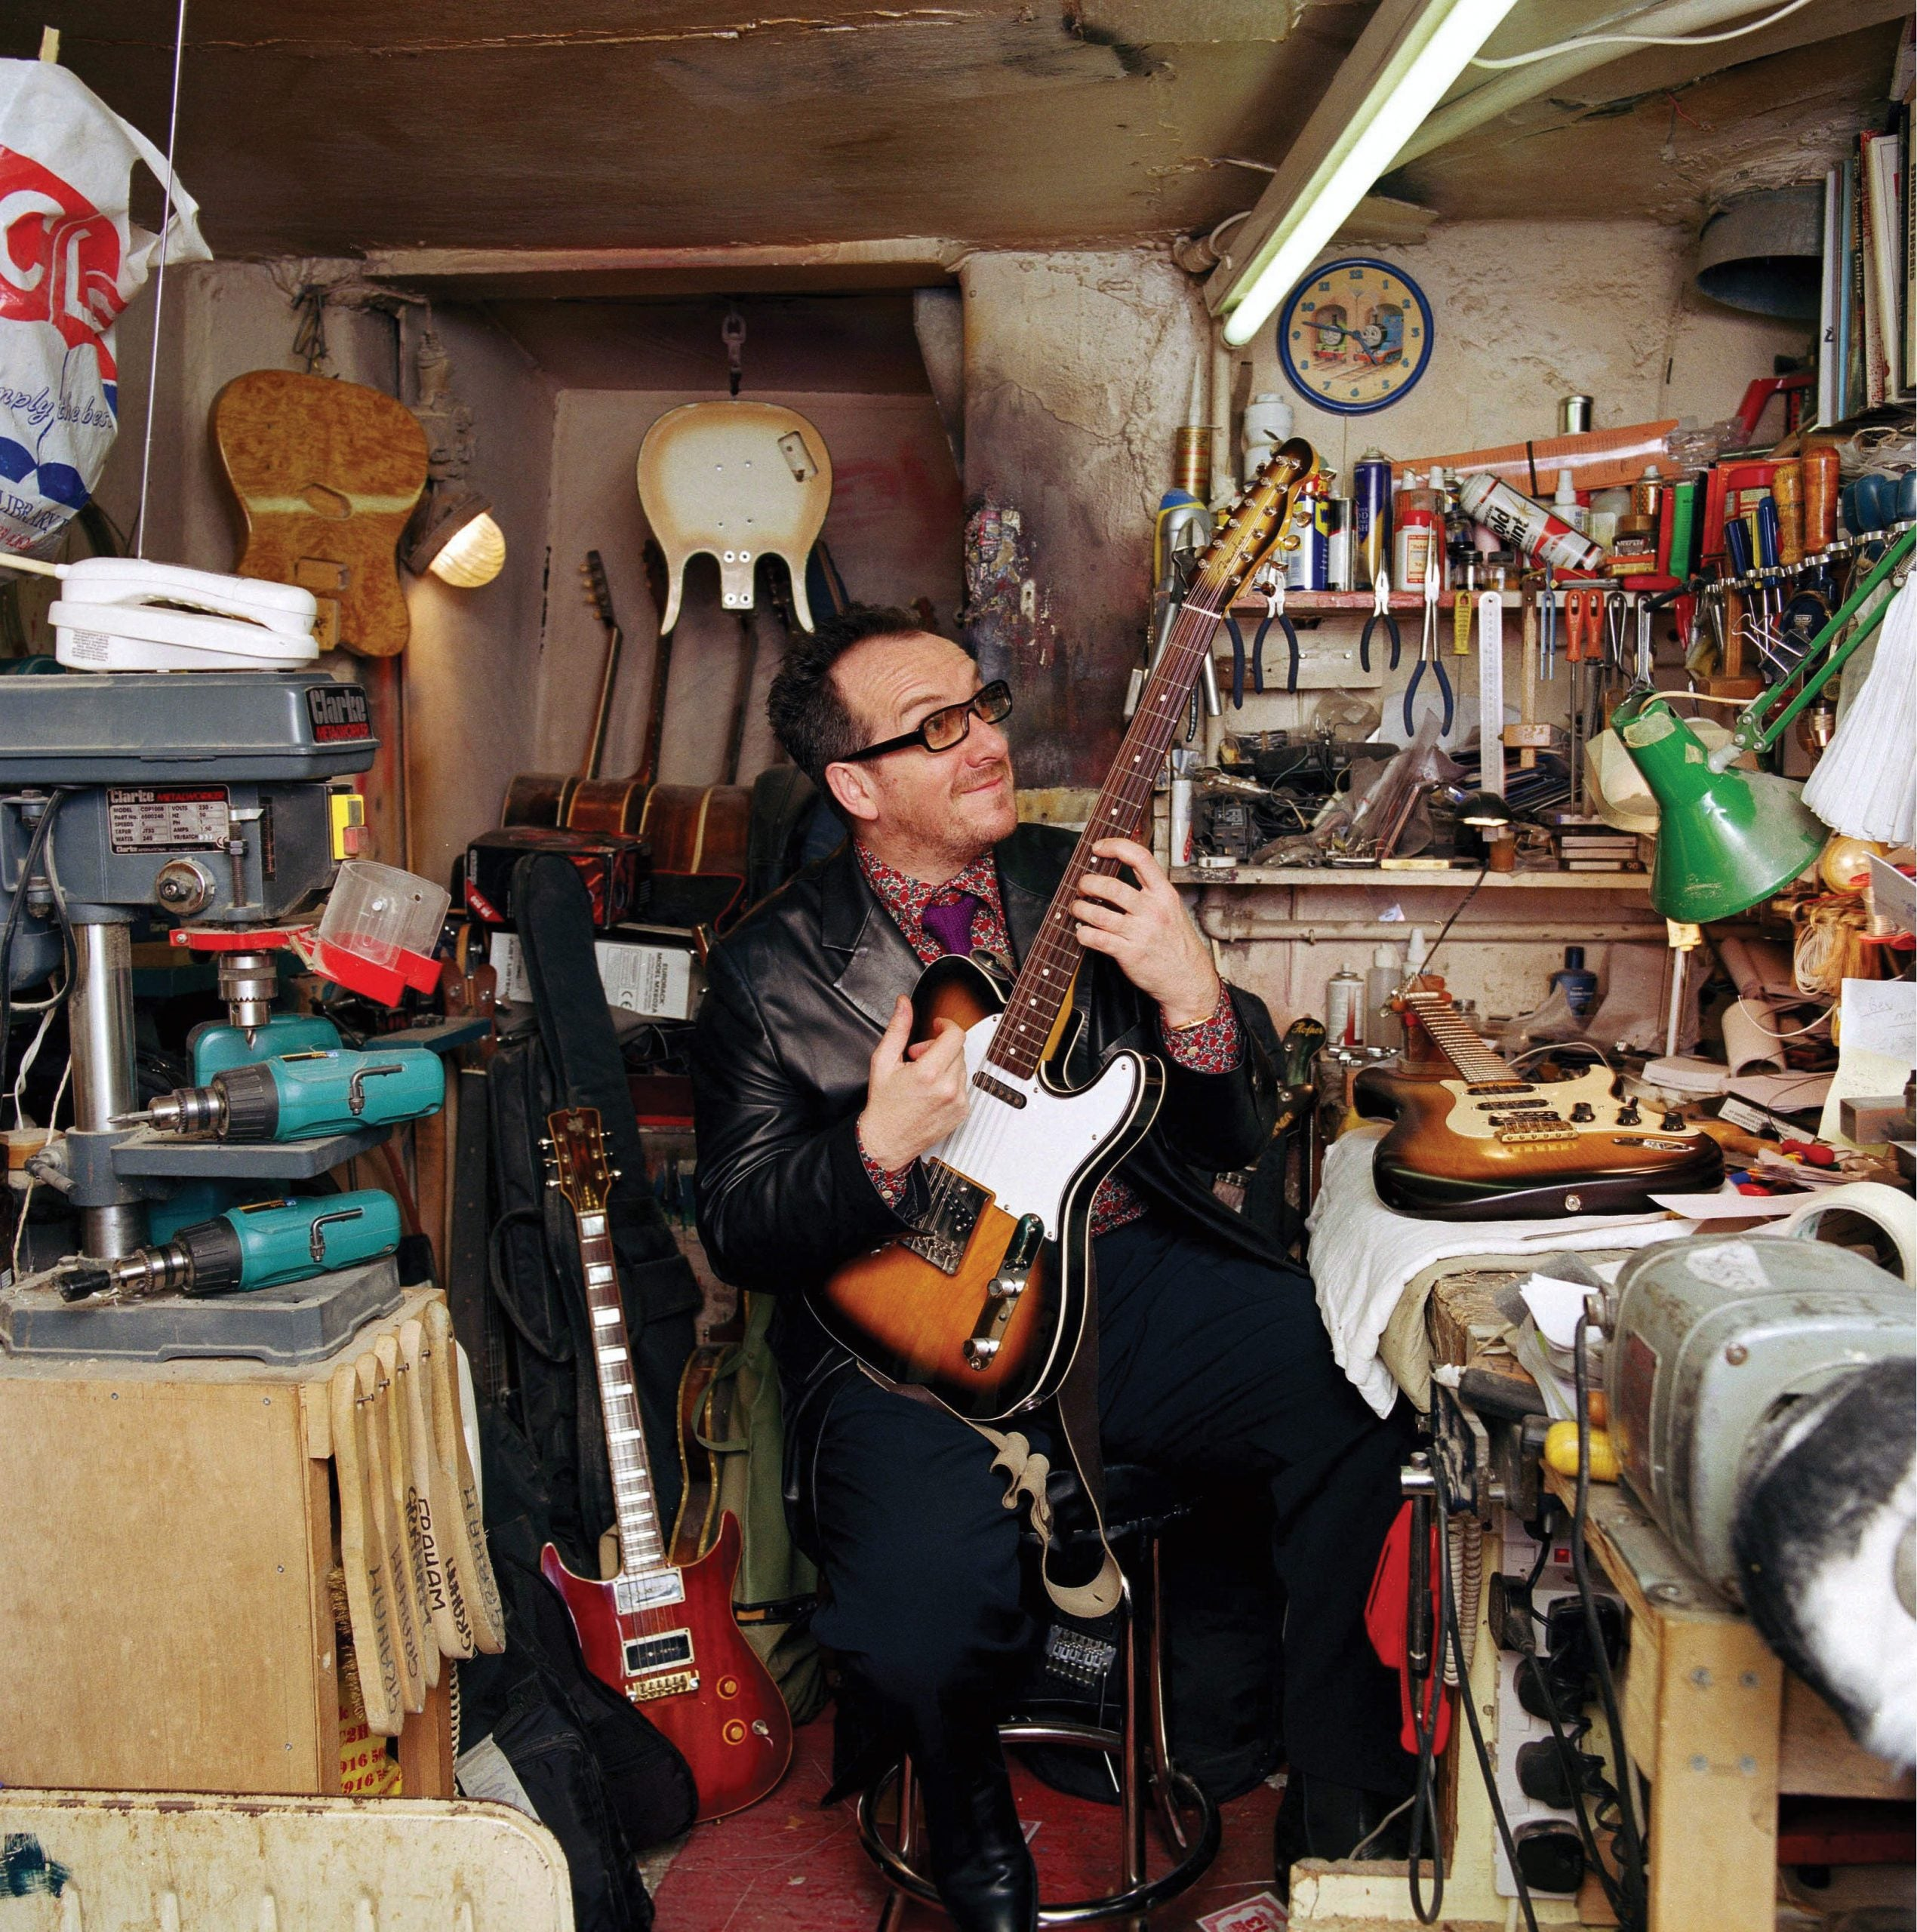 The butterfly mind of Elvis Costello